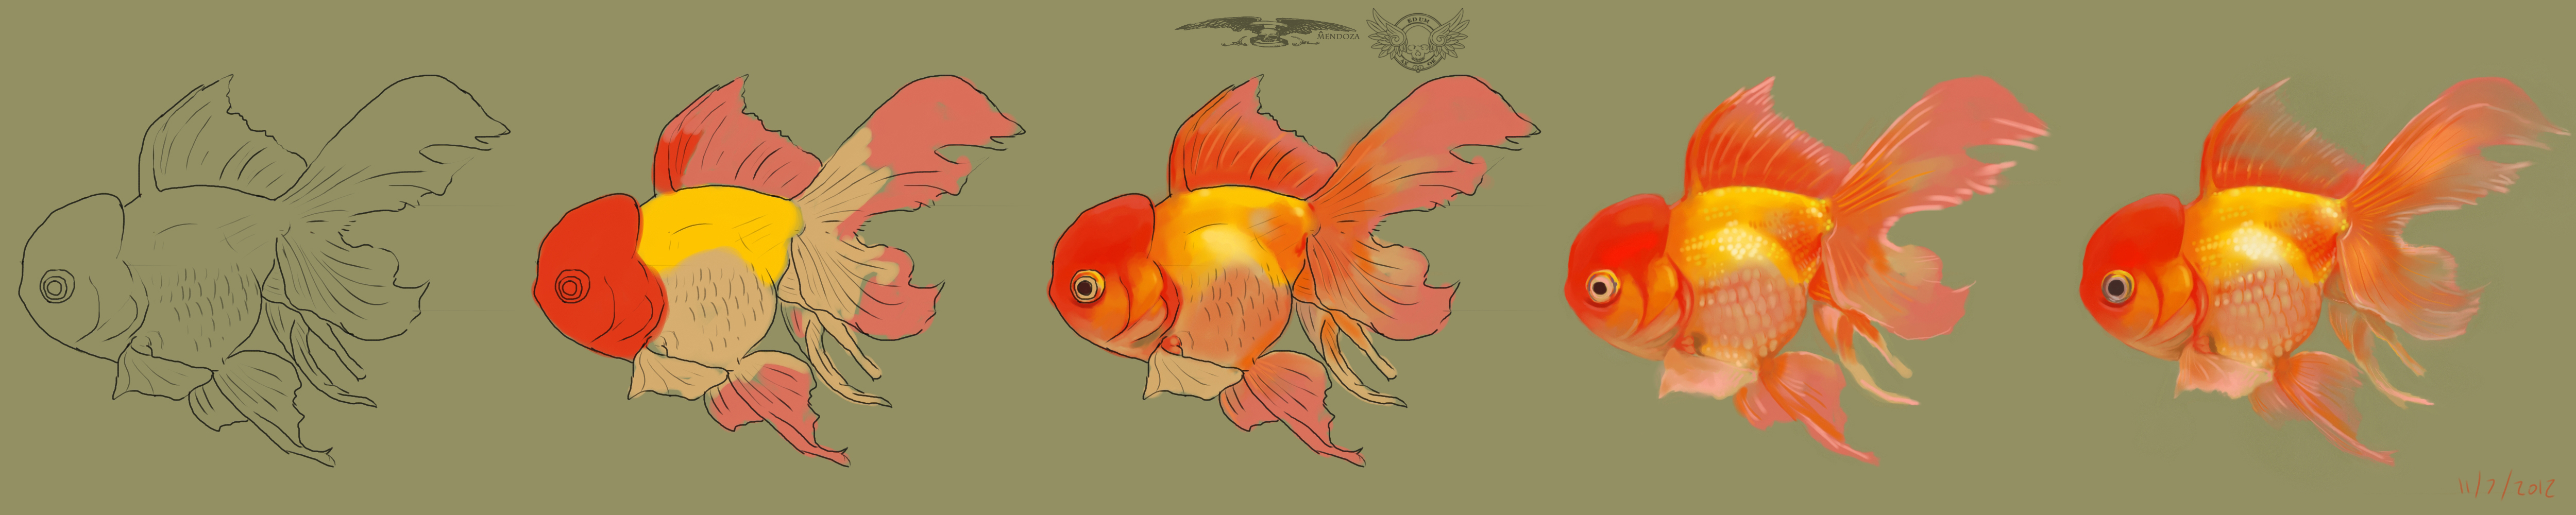 Gold fish painting progression by kingreddark on deviantart for How to paint a fish